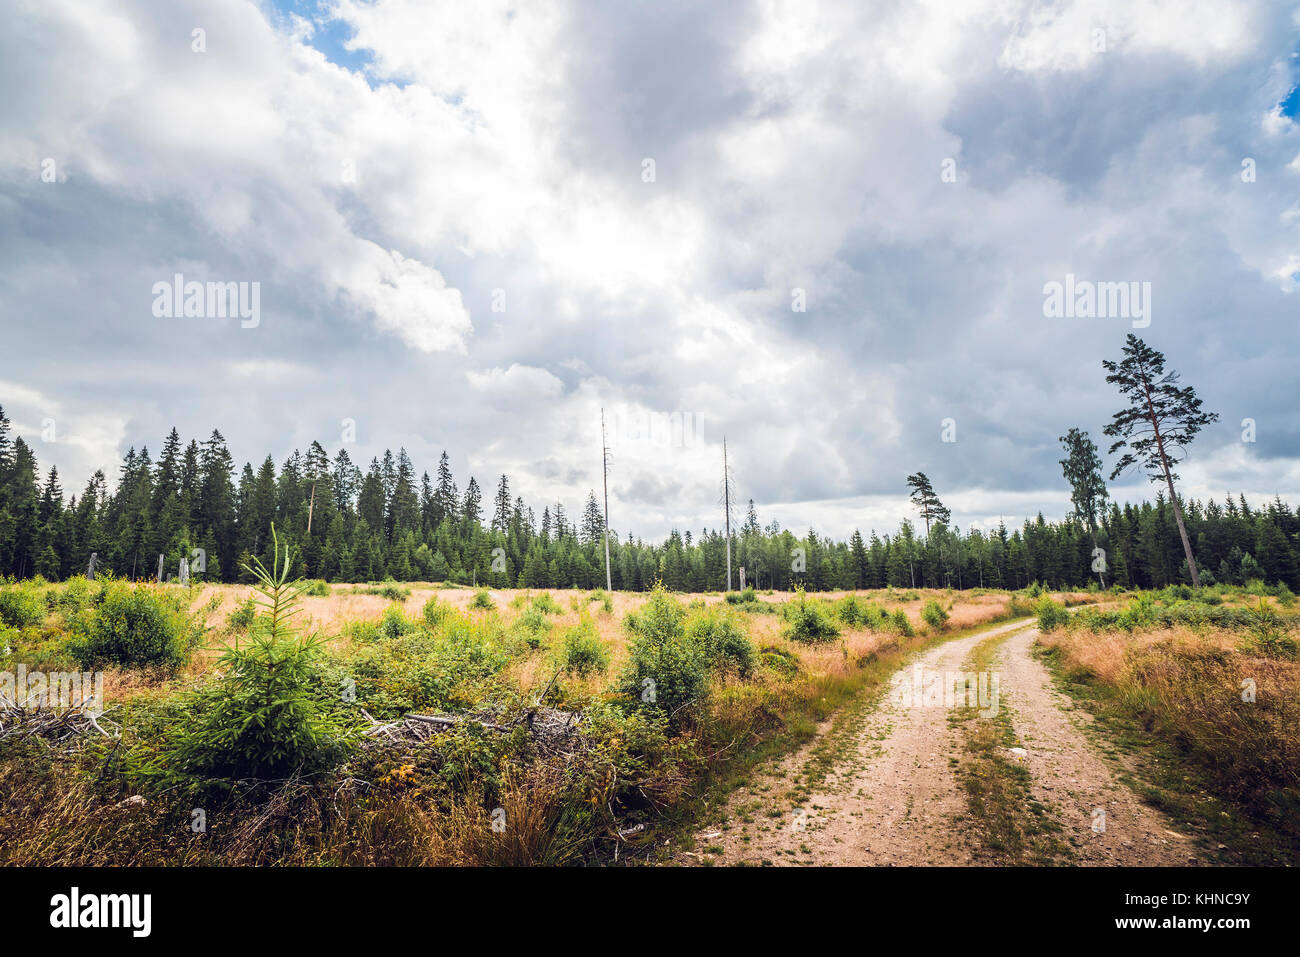 Road going through a forest clearing with pine trees and tall grass in cloudy weather in the summer - Stock Image